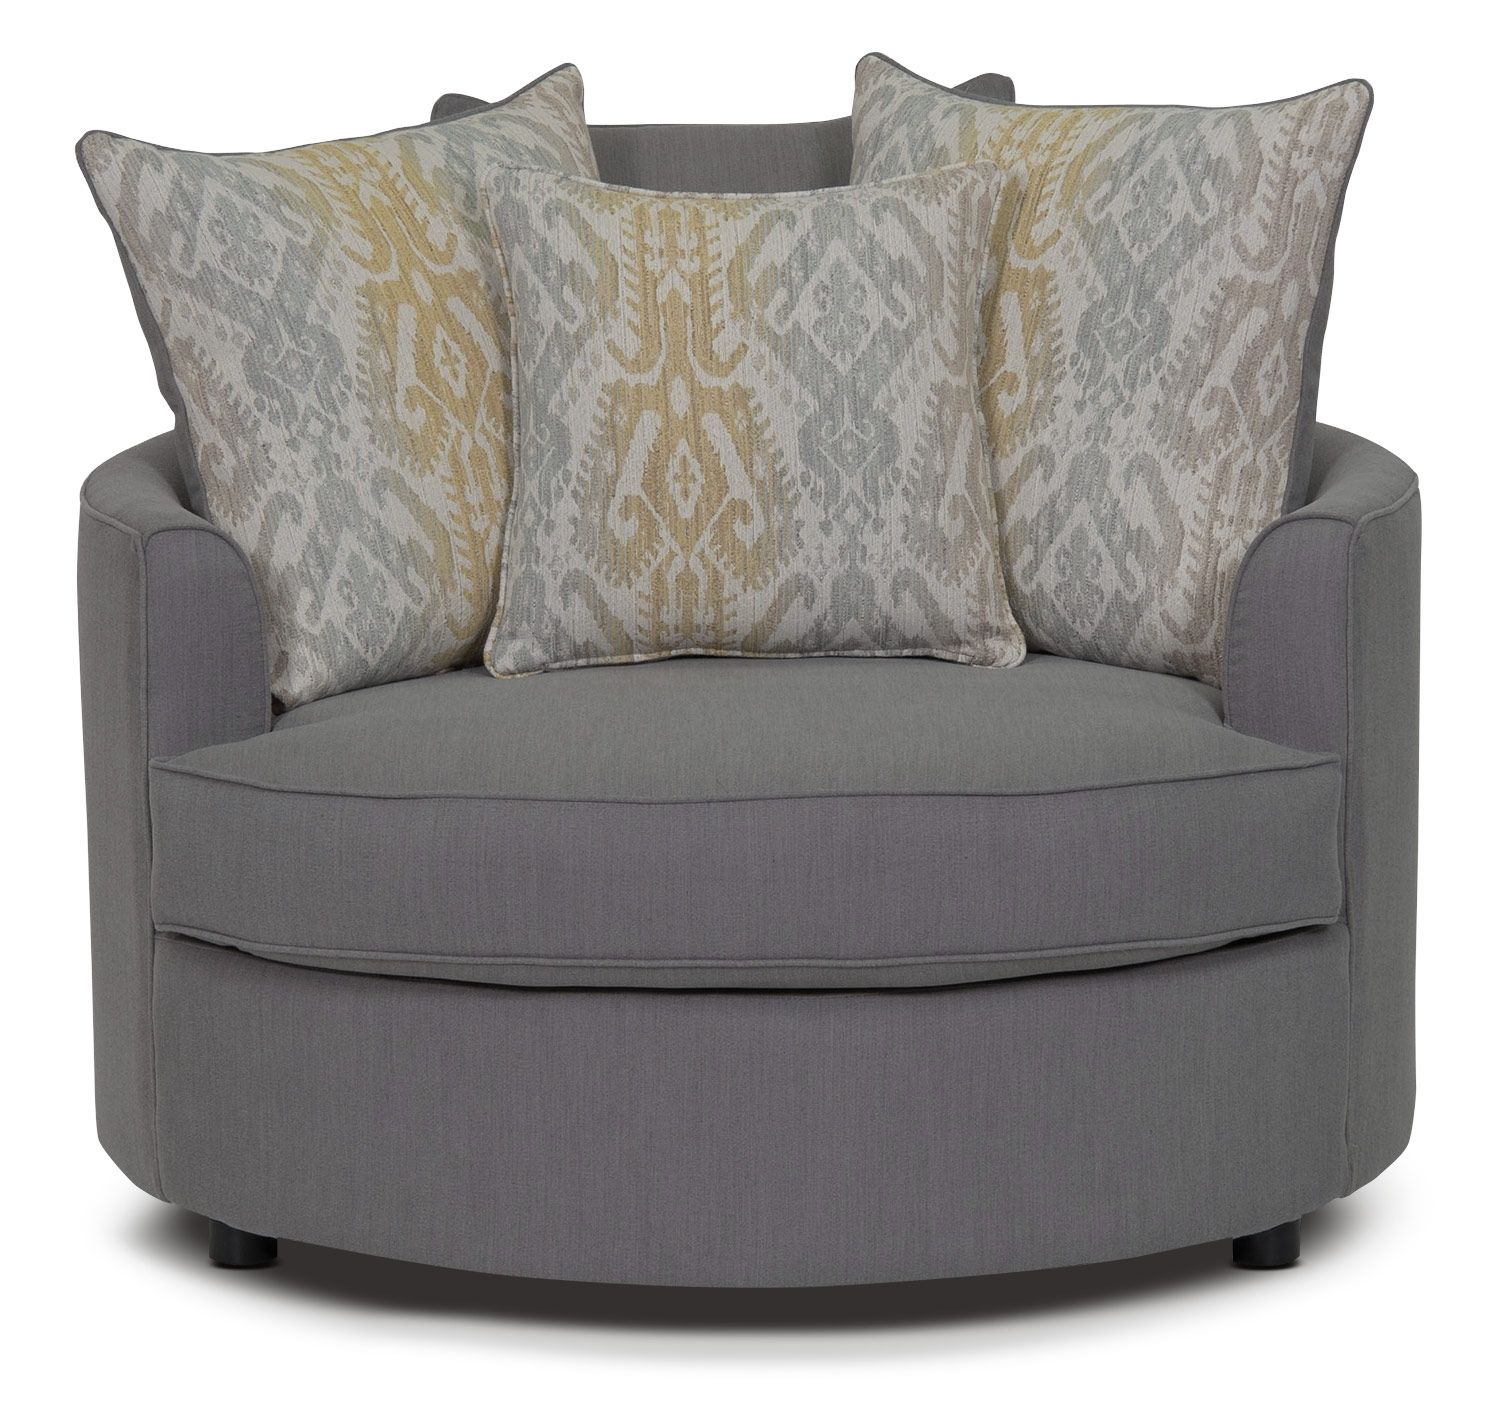 Offer A Dignified And Tasteful Living Room To Your Guests With Regarding Round Sofa Chair Living Room Furniture (Image 5 of 15)